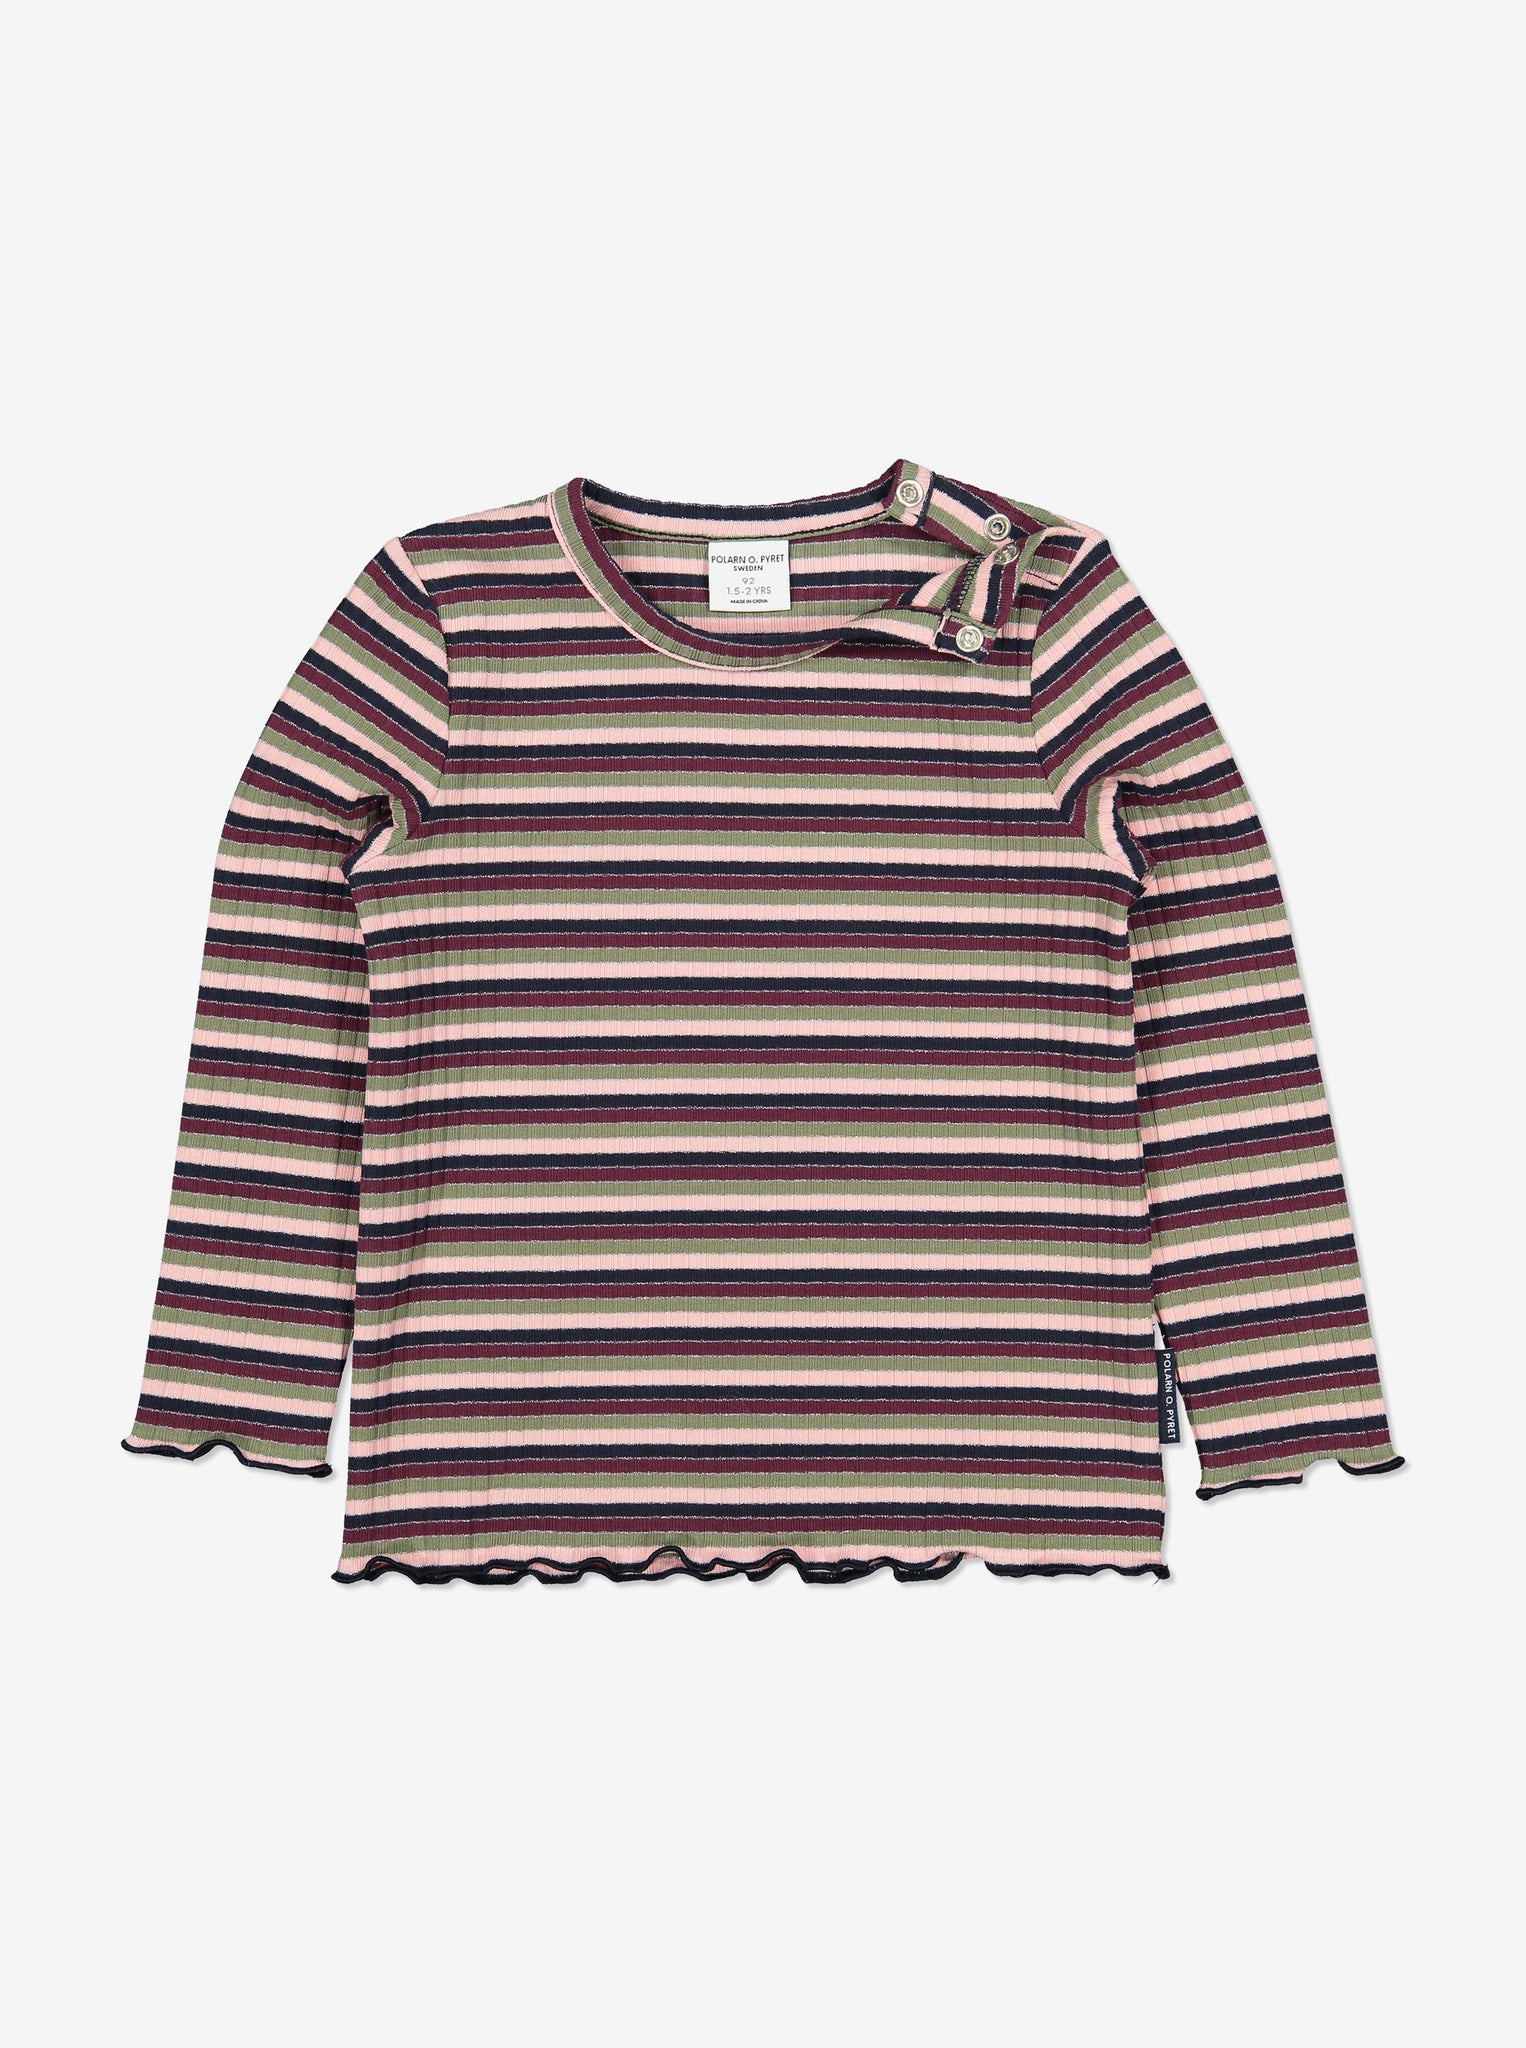 Striped Ribbed Kids Top-Girl-1-12y-Pink